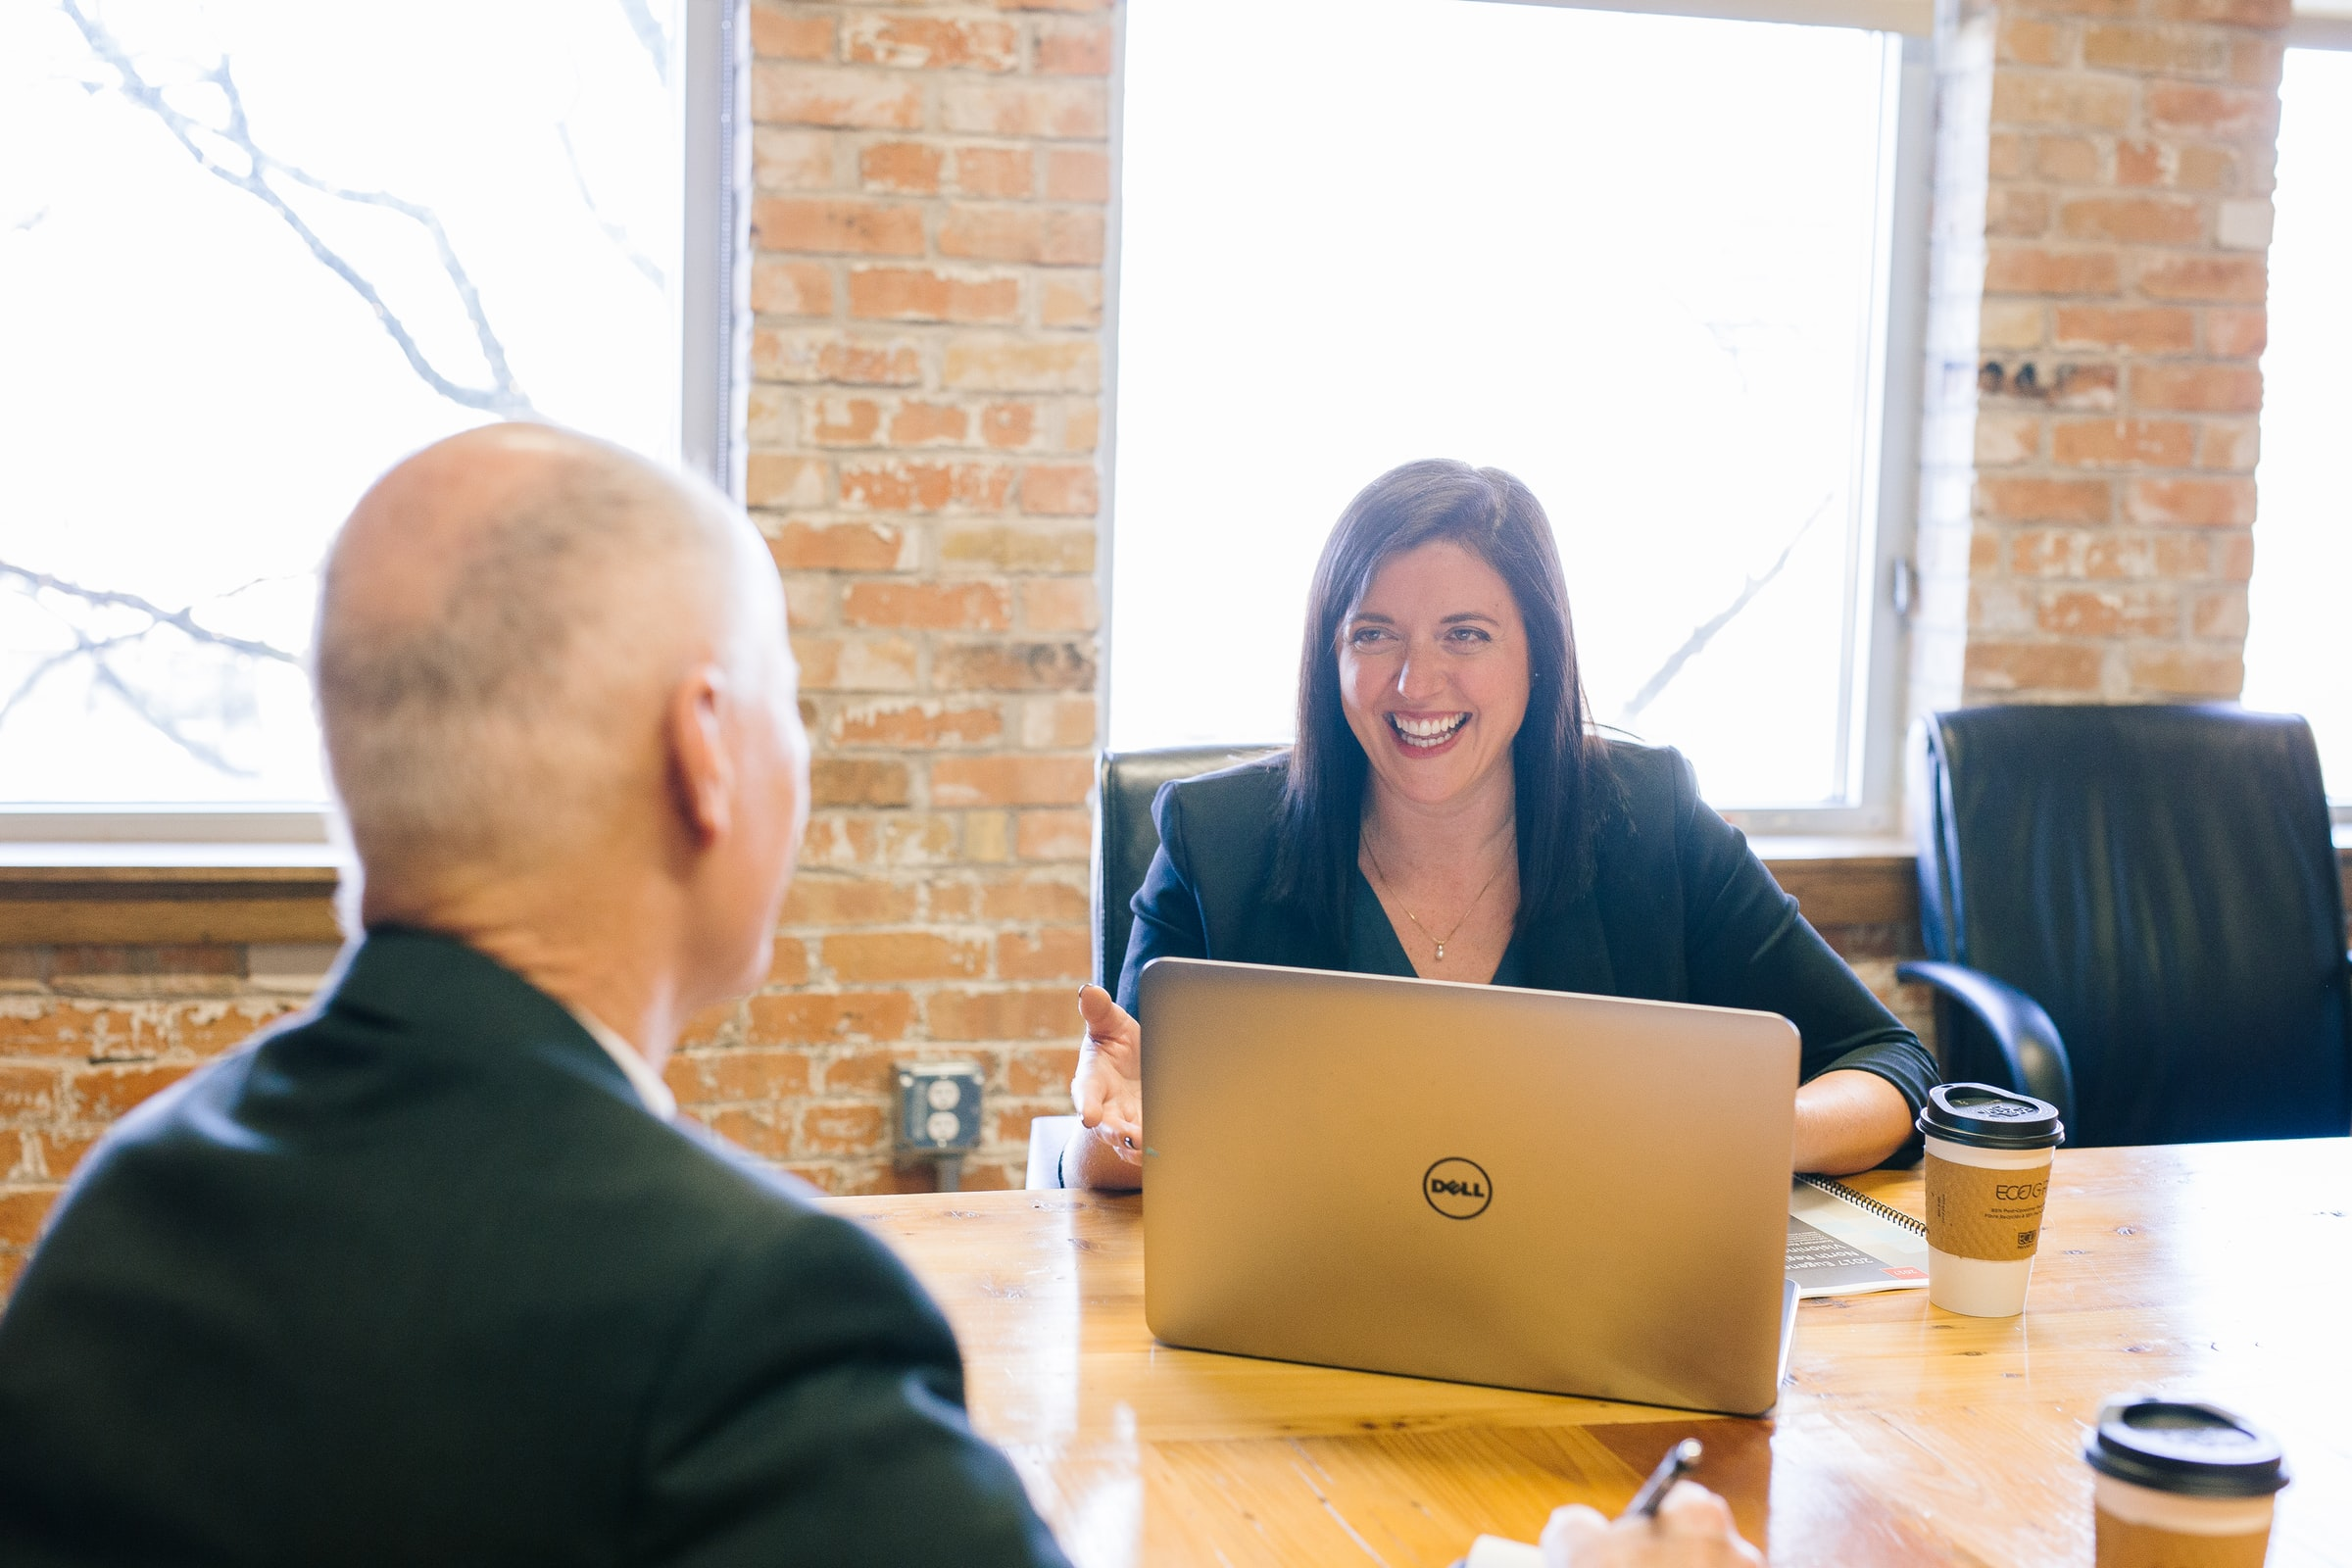 Candidate Experience: Addressing Gaps in Candidate and Employer Expectations